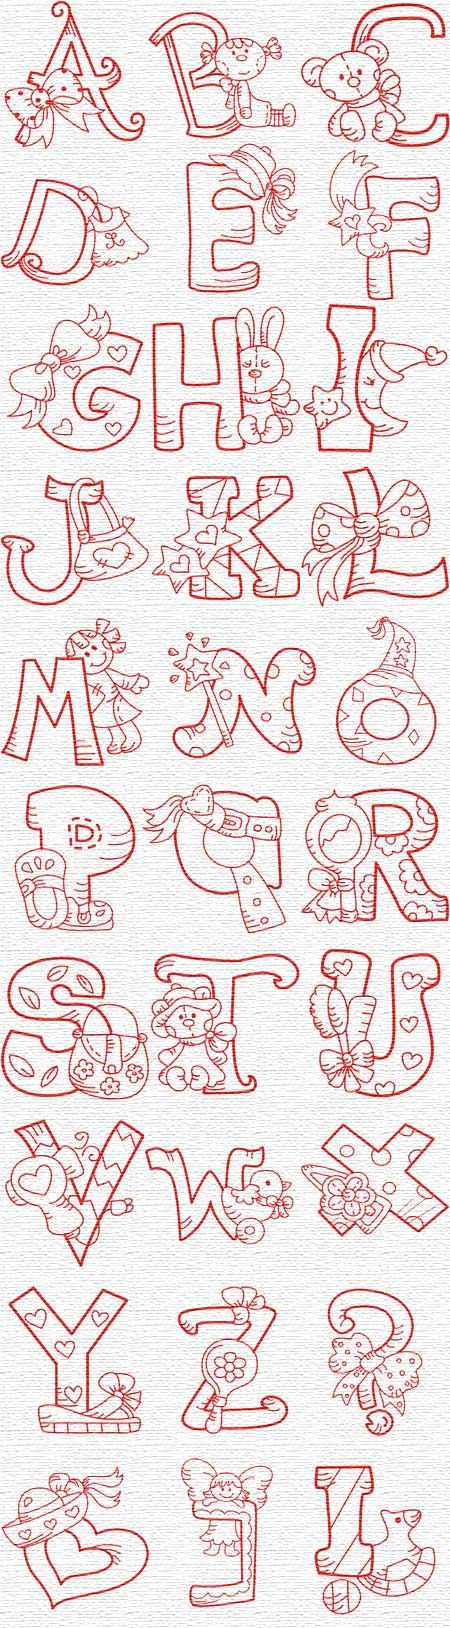 Free Embroidery Designs, Sweet Embroidery, Designs Index Page                                                                                                                                                                                 Más